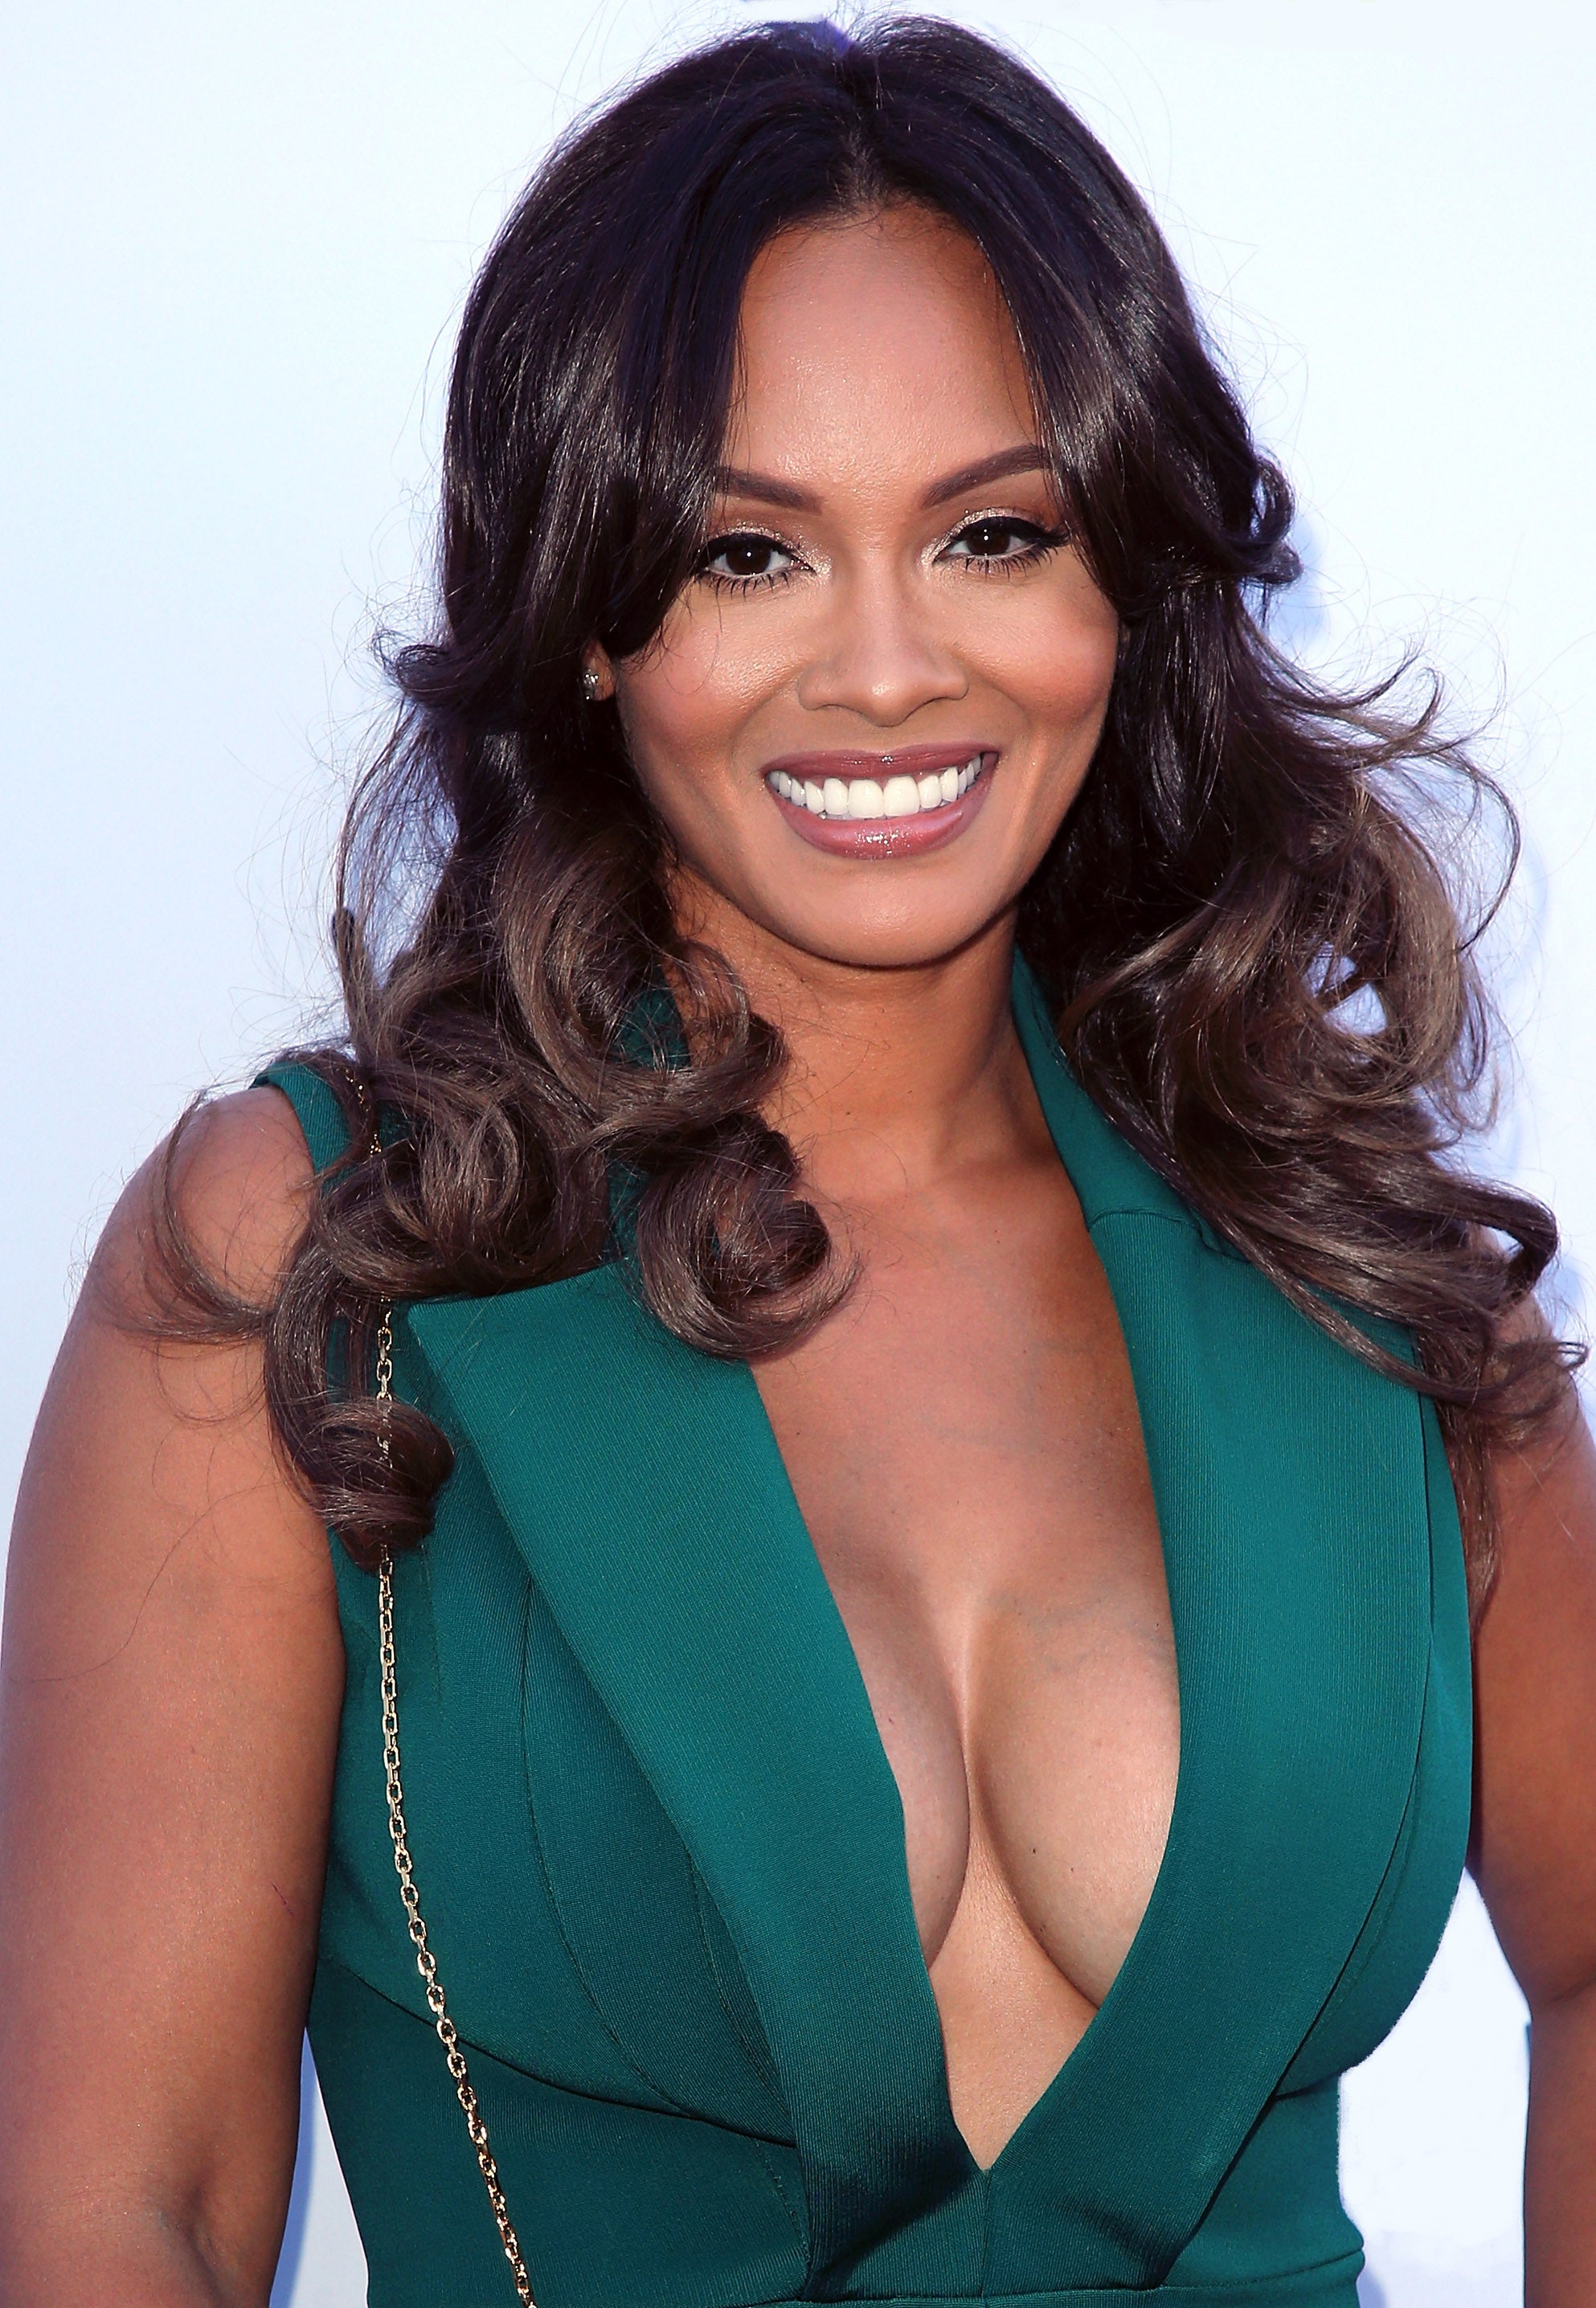 Pictures Evelyn Lozada naked (25 photos), Tits, Hot, Selfie, bra 2015